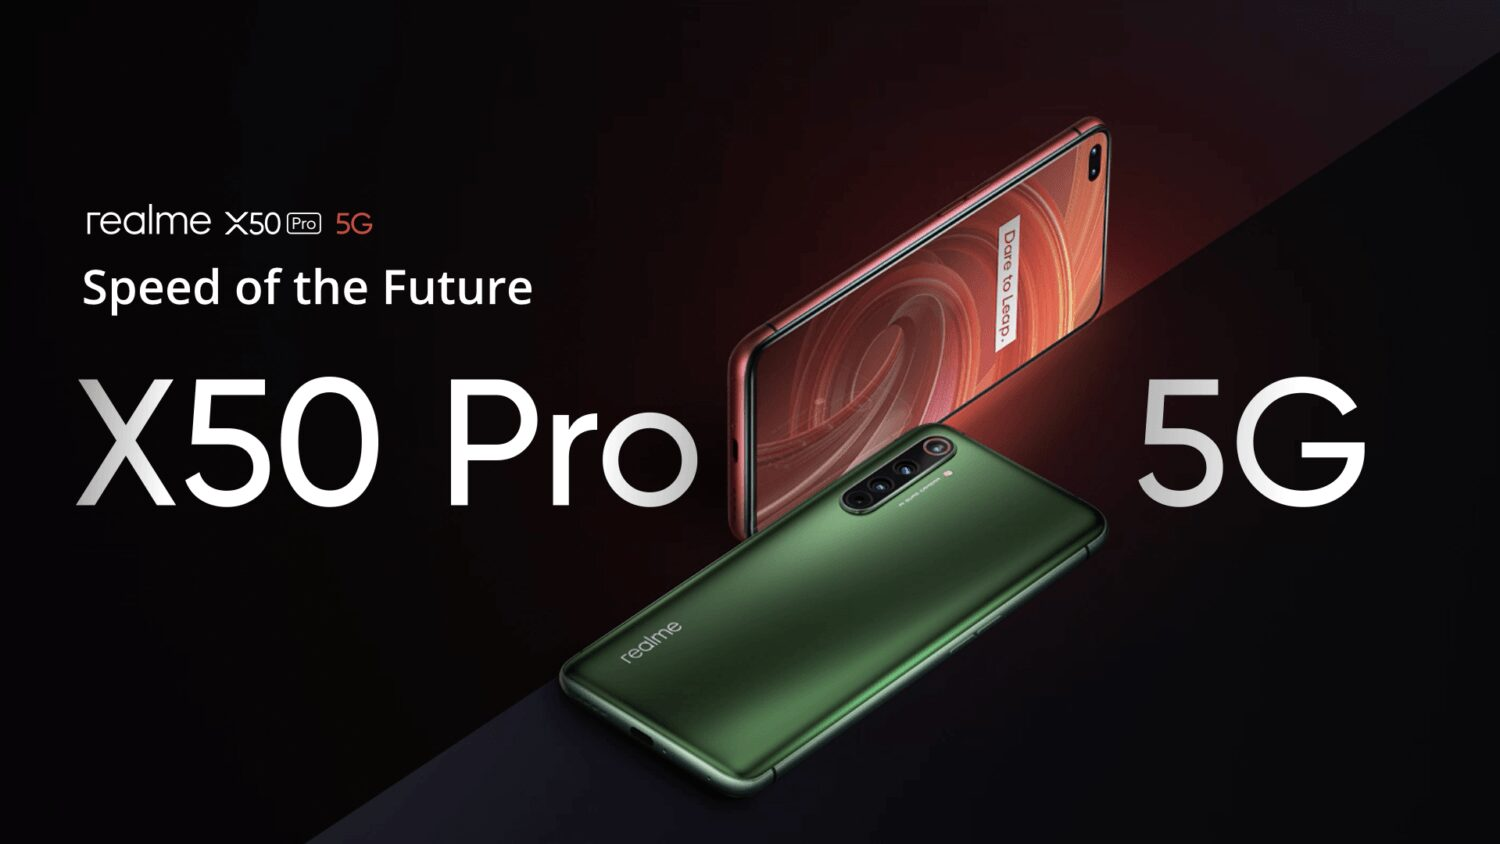 realme-X50-Pro-5G-smartphone-android